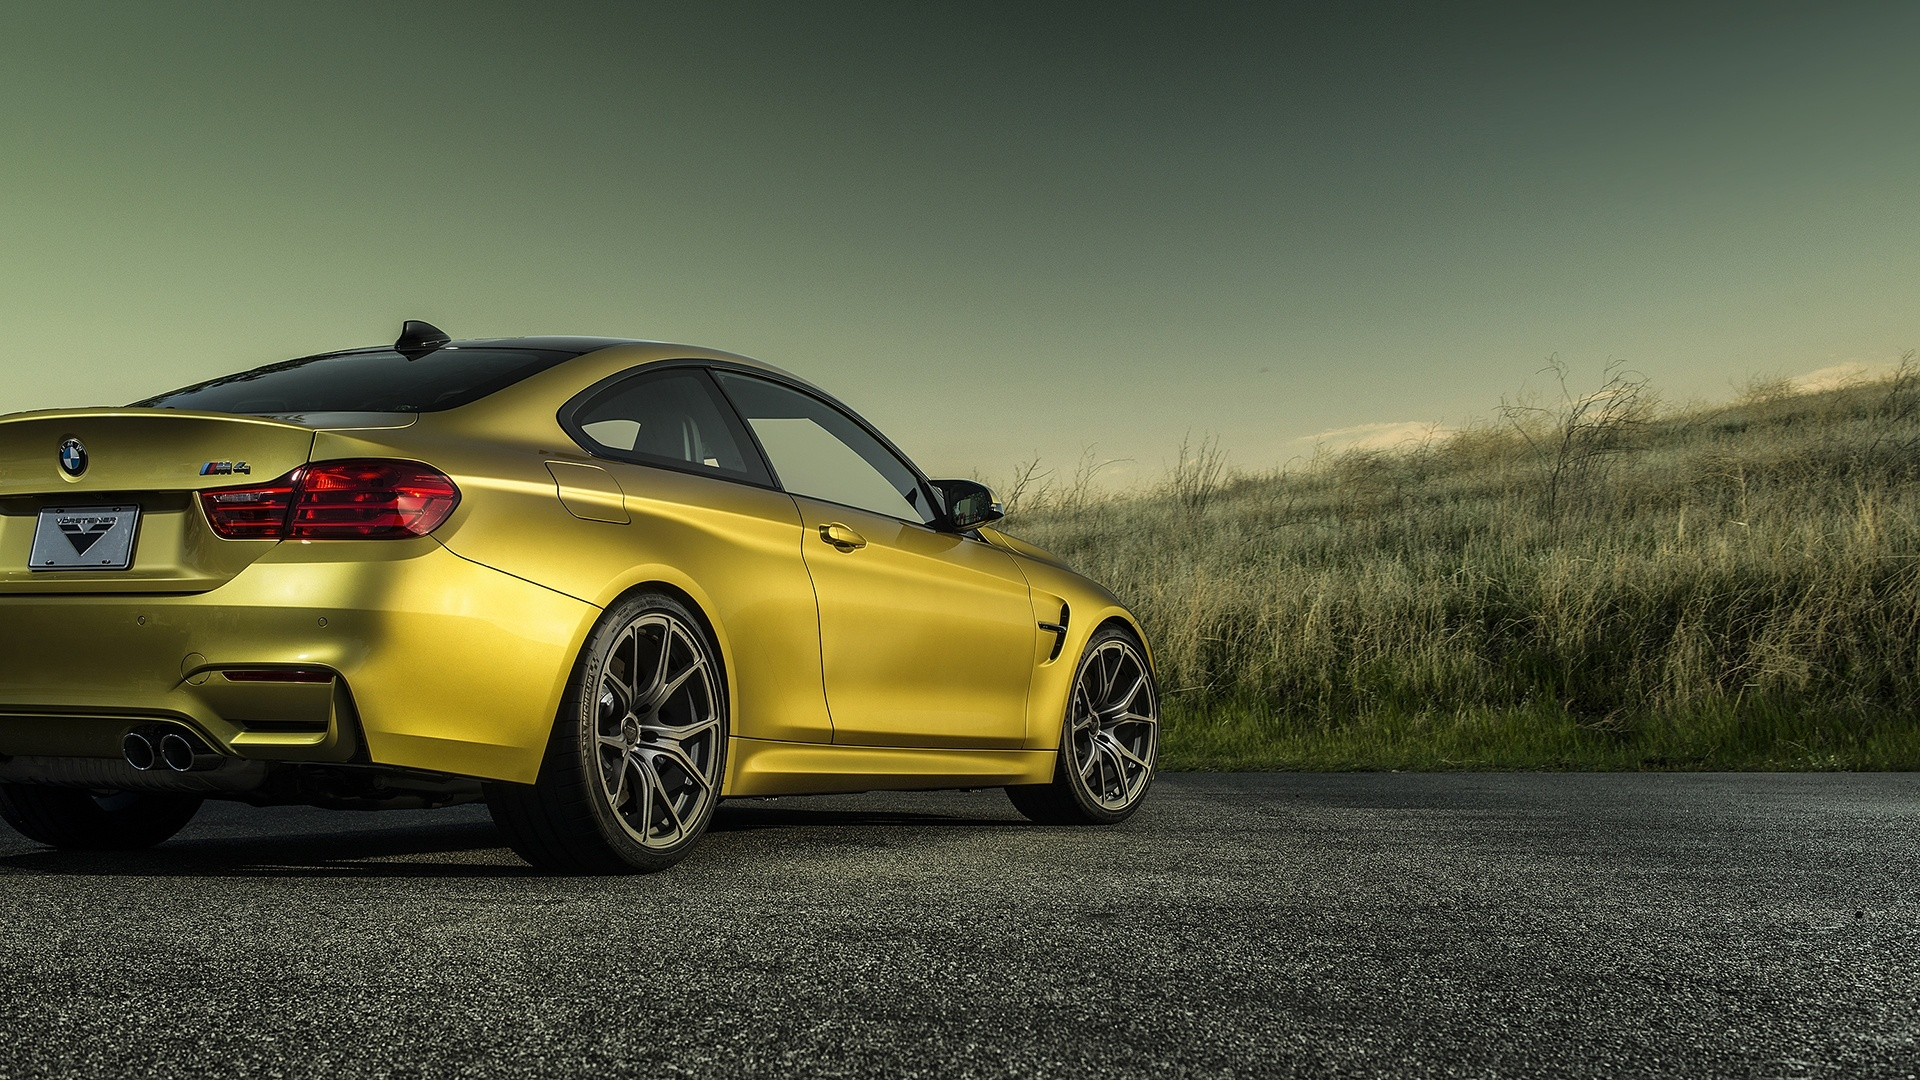 1920x1080 - BMW M4 Wallpapers 14